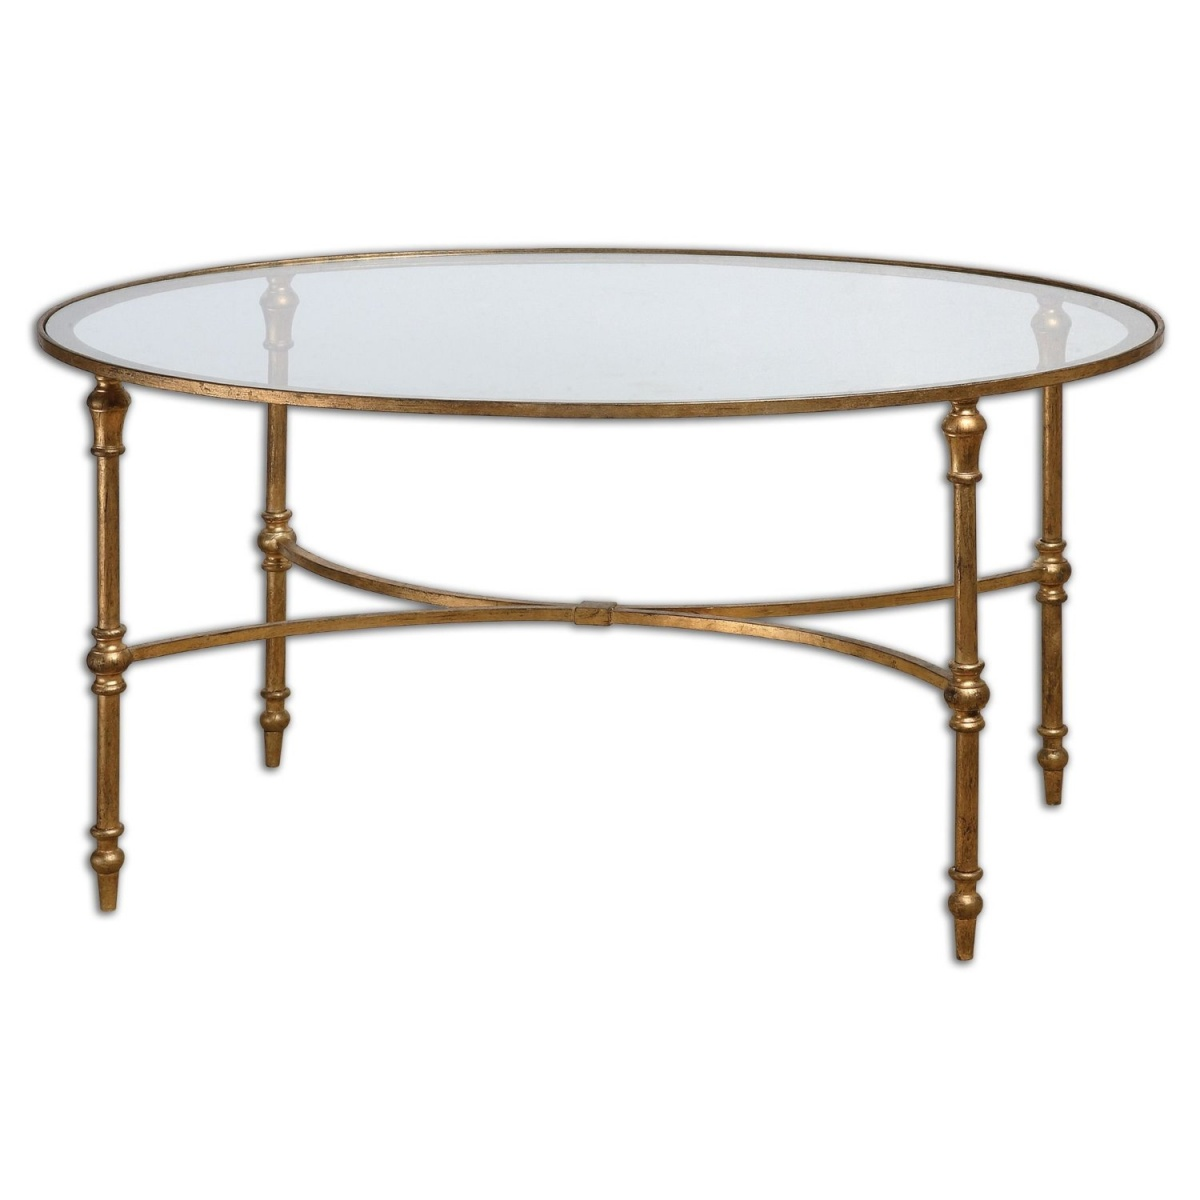 Image of: round gold glass coffee table